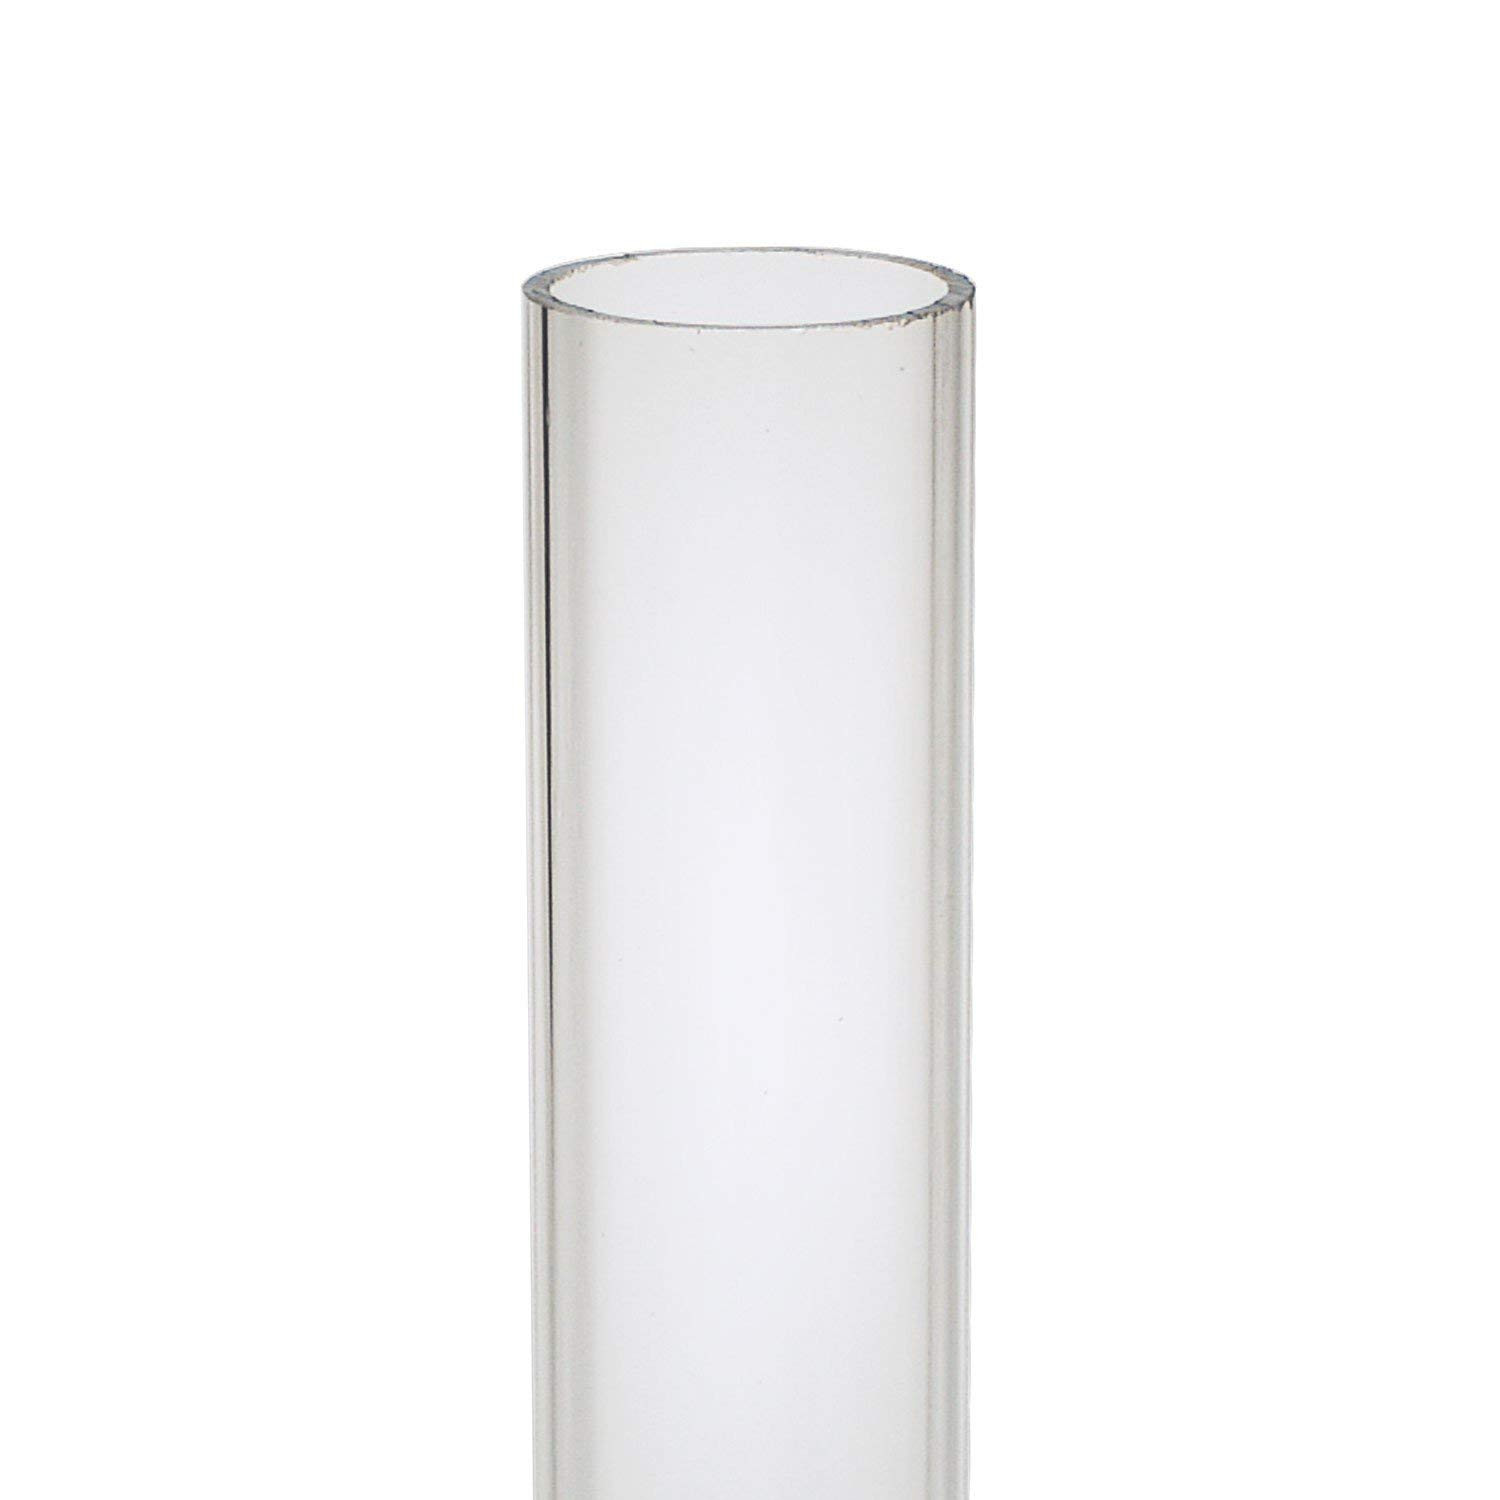 clear acrylic square vases of amazon com source one deluxe clear acrylic tube 2 inches thick 12 within amazon com source one deluxe clear acrylic tube 2 inches thick 12 inch 2 inch wide office products